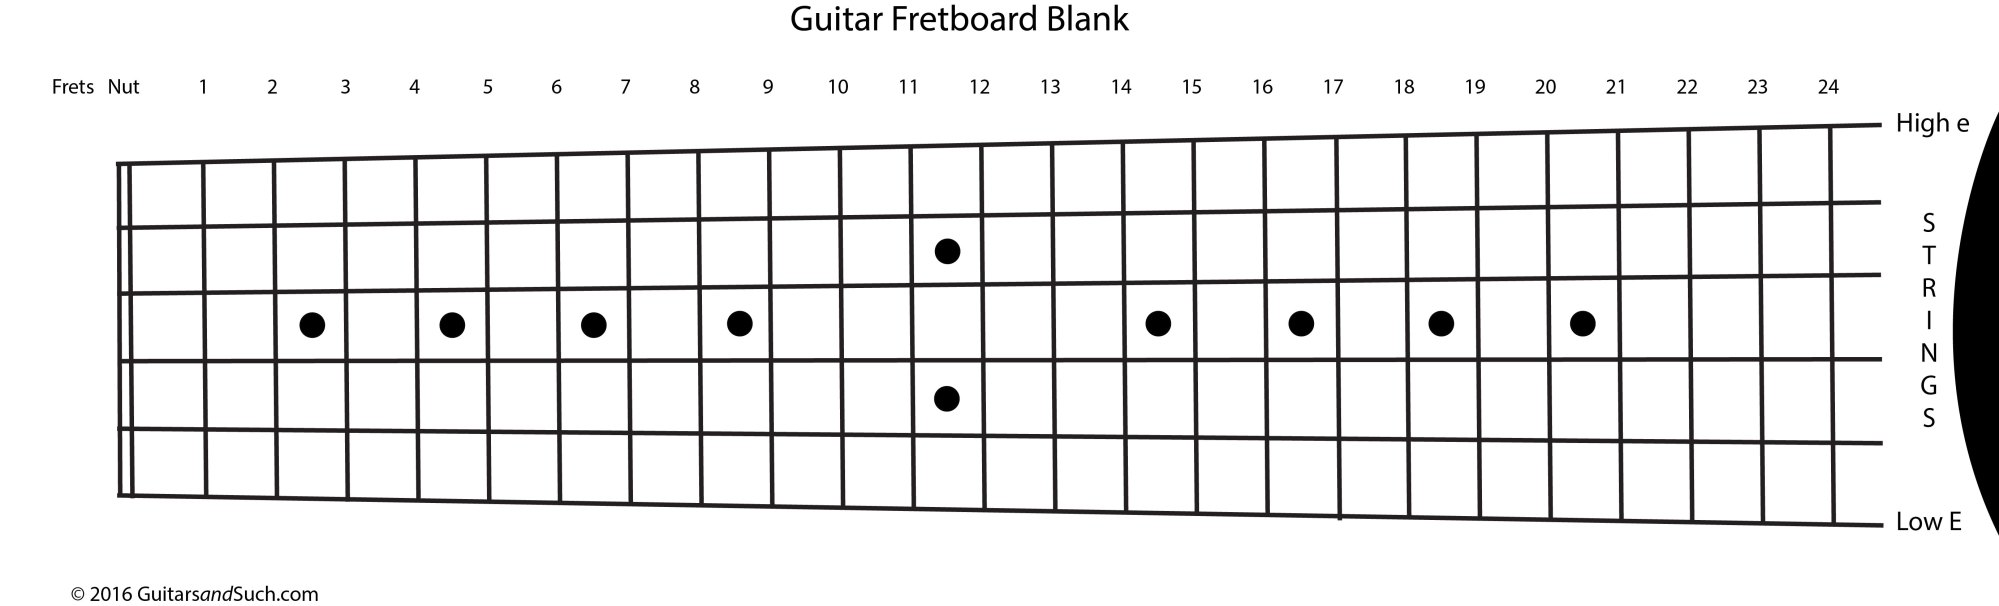 Guitar fretboard   How to Play Guitar for Beginners Step-by-step